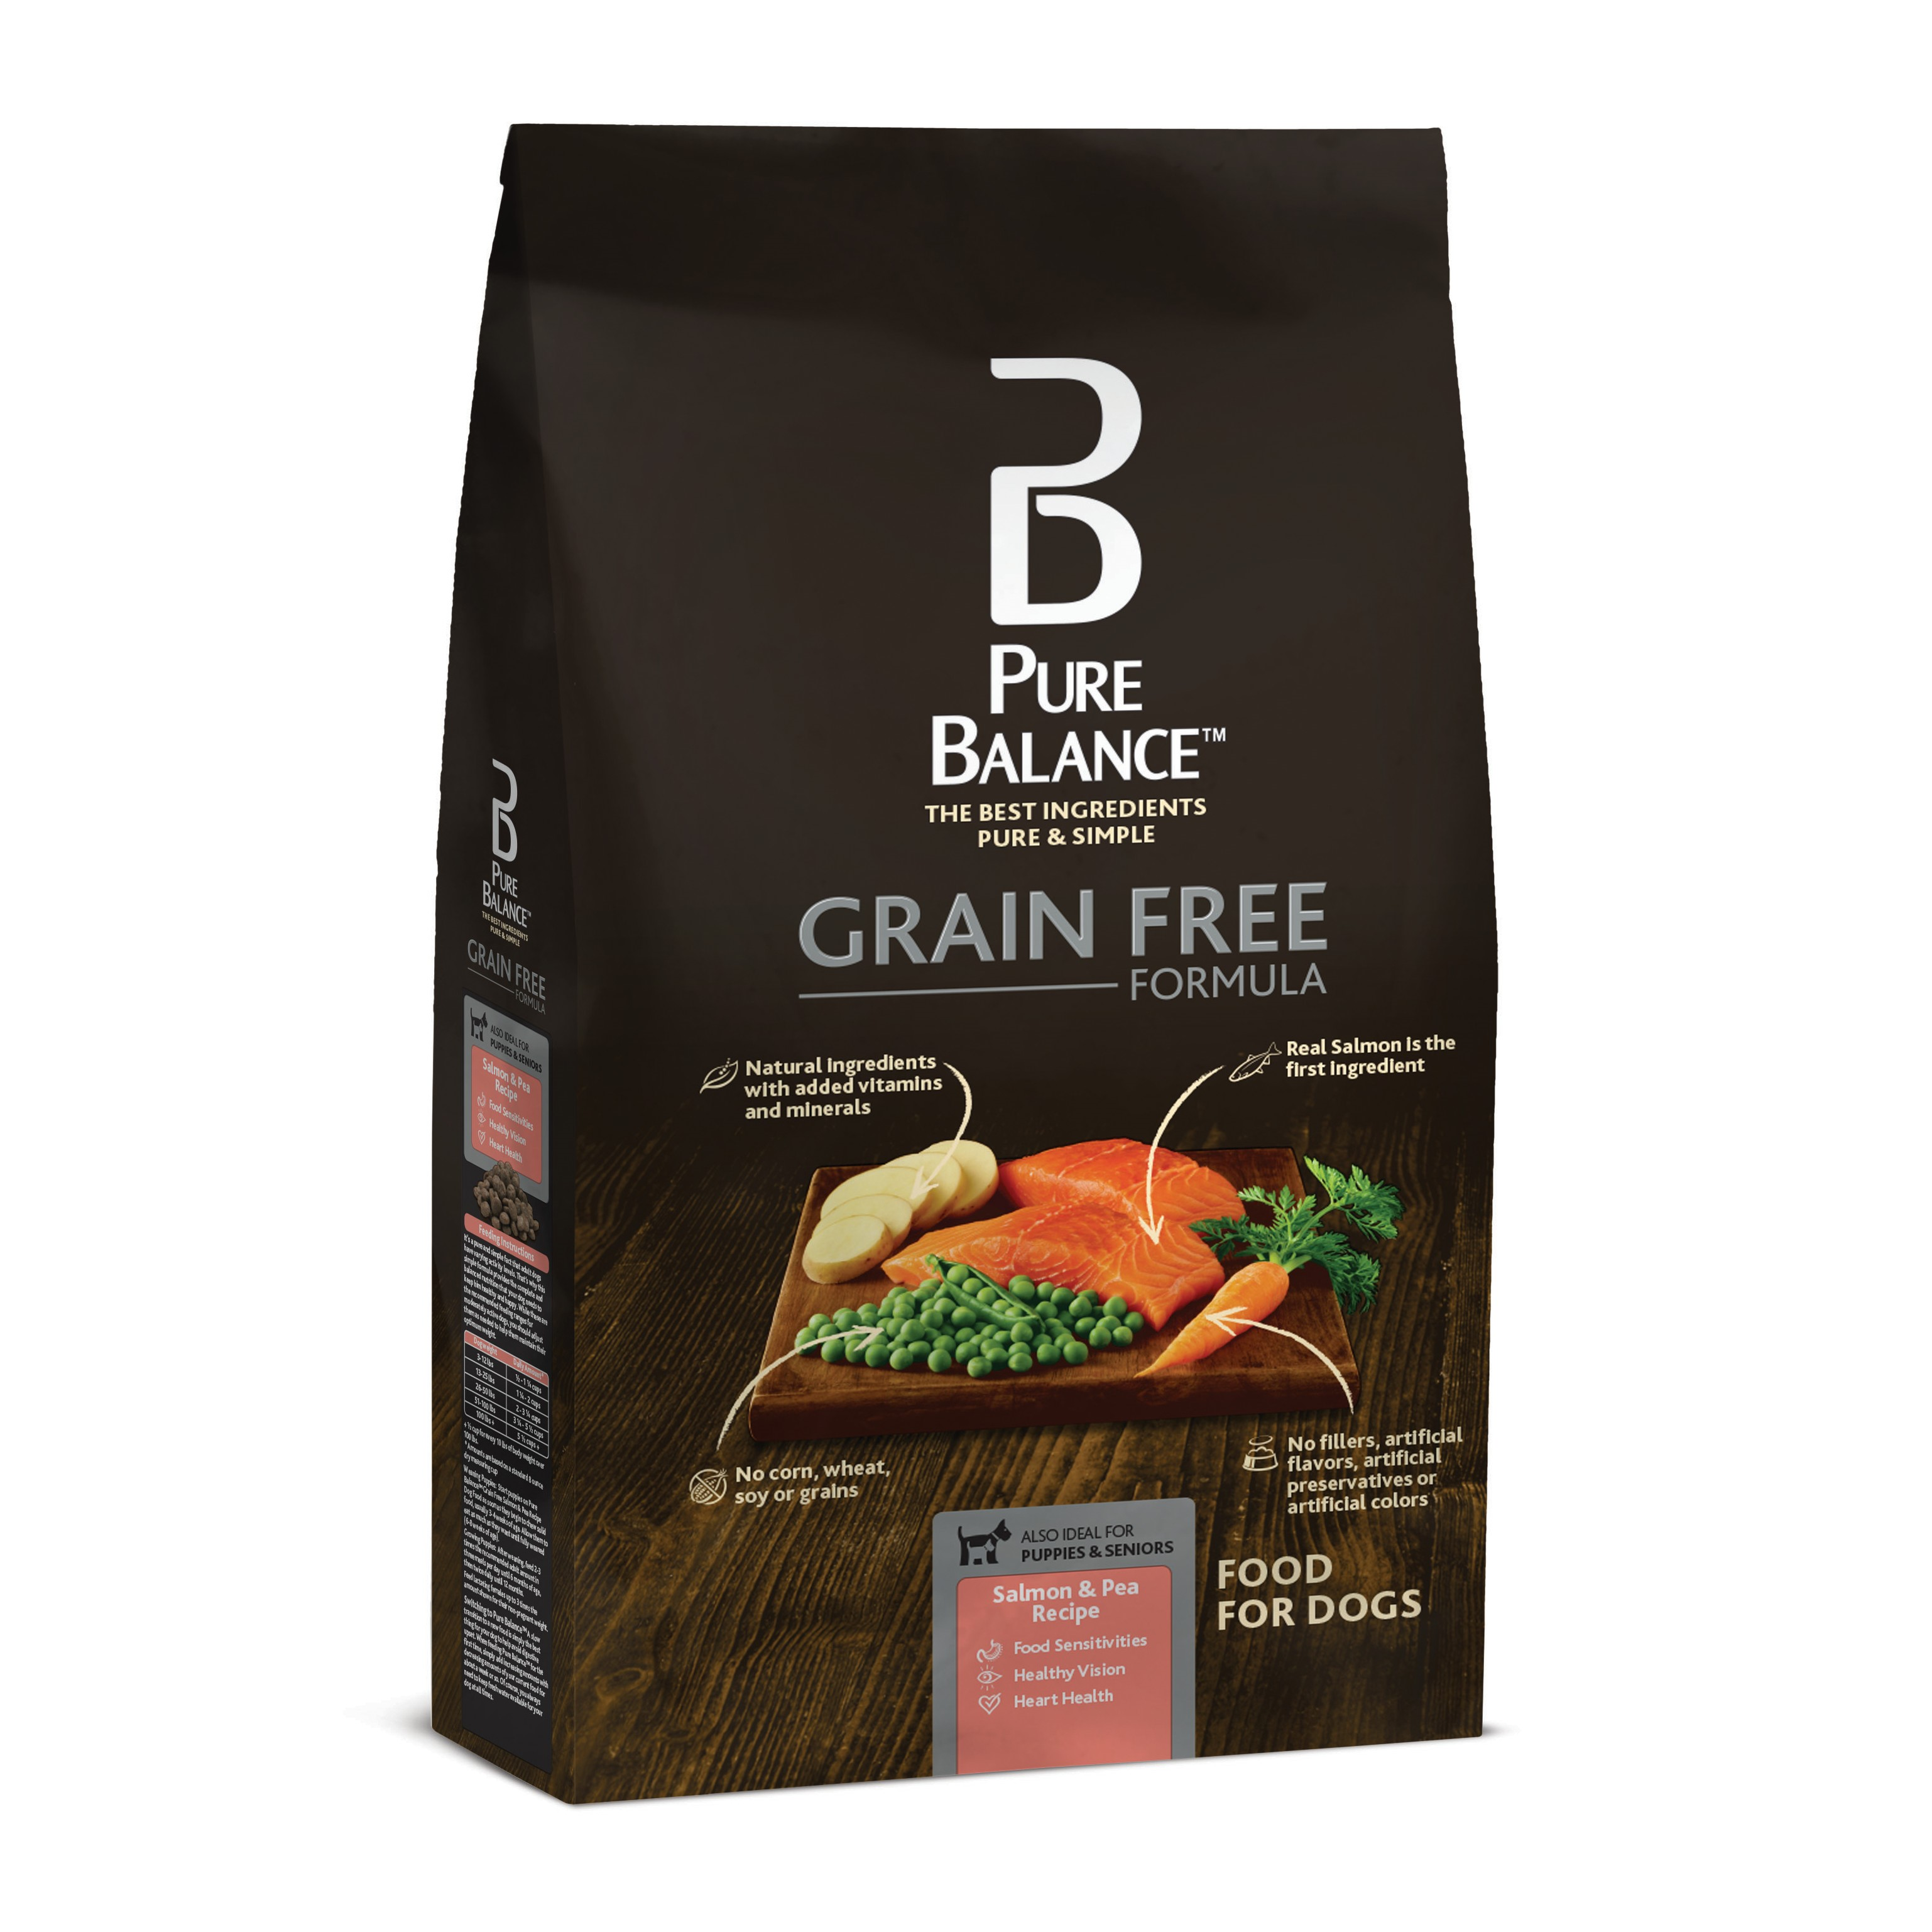 Pure Balance Grain Free Formula Salmon & Pea Dry Dog Food, 24 Lb